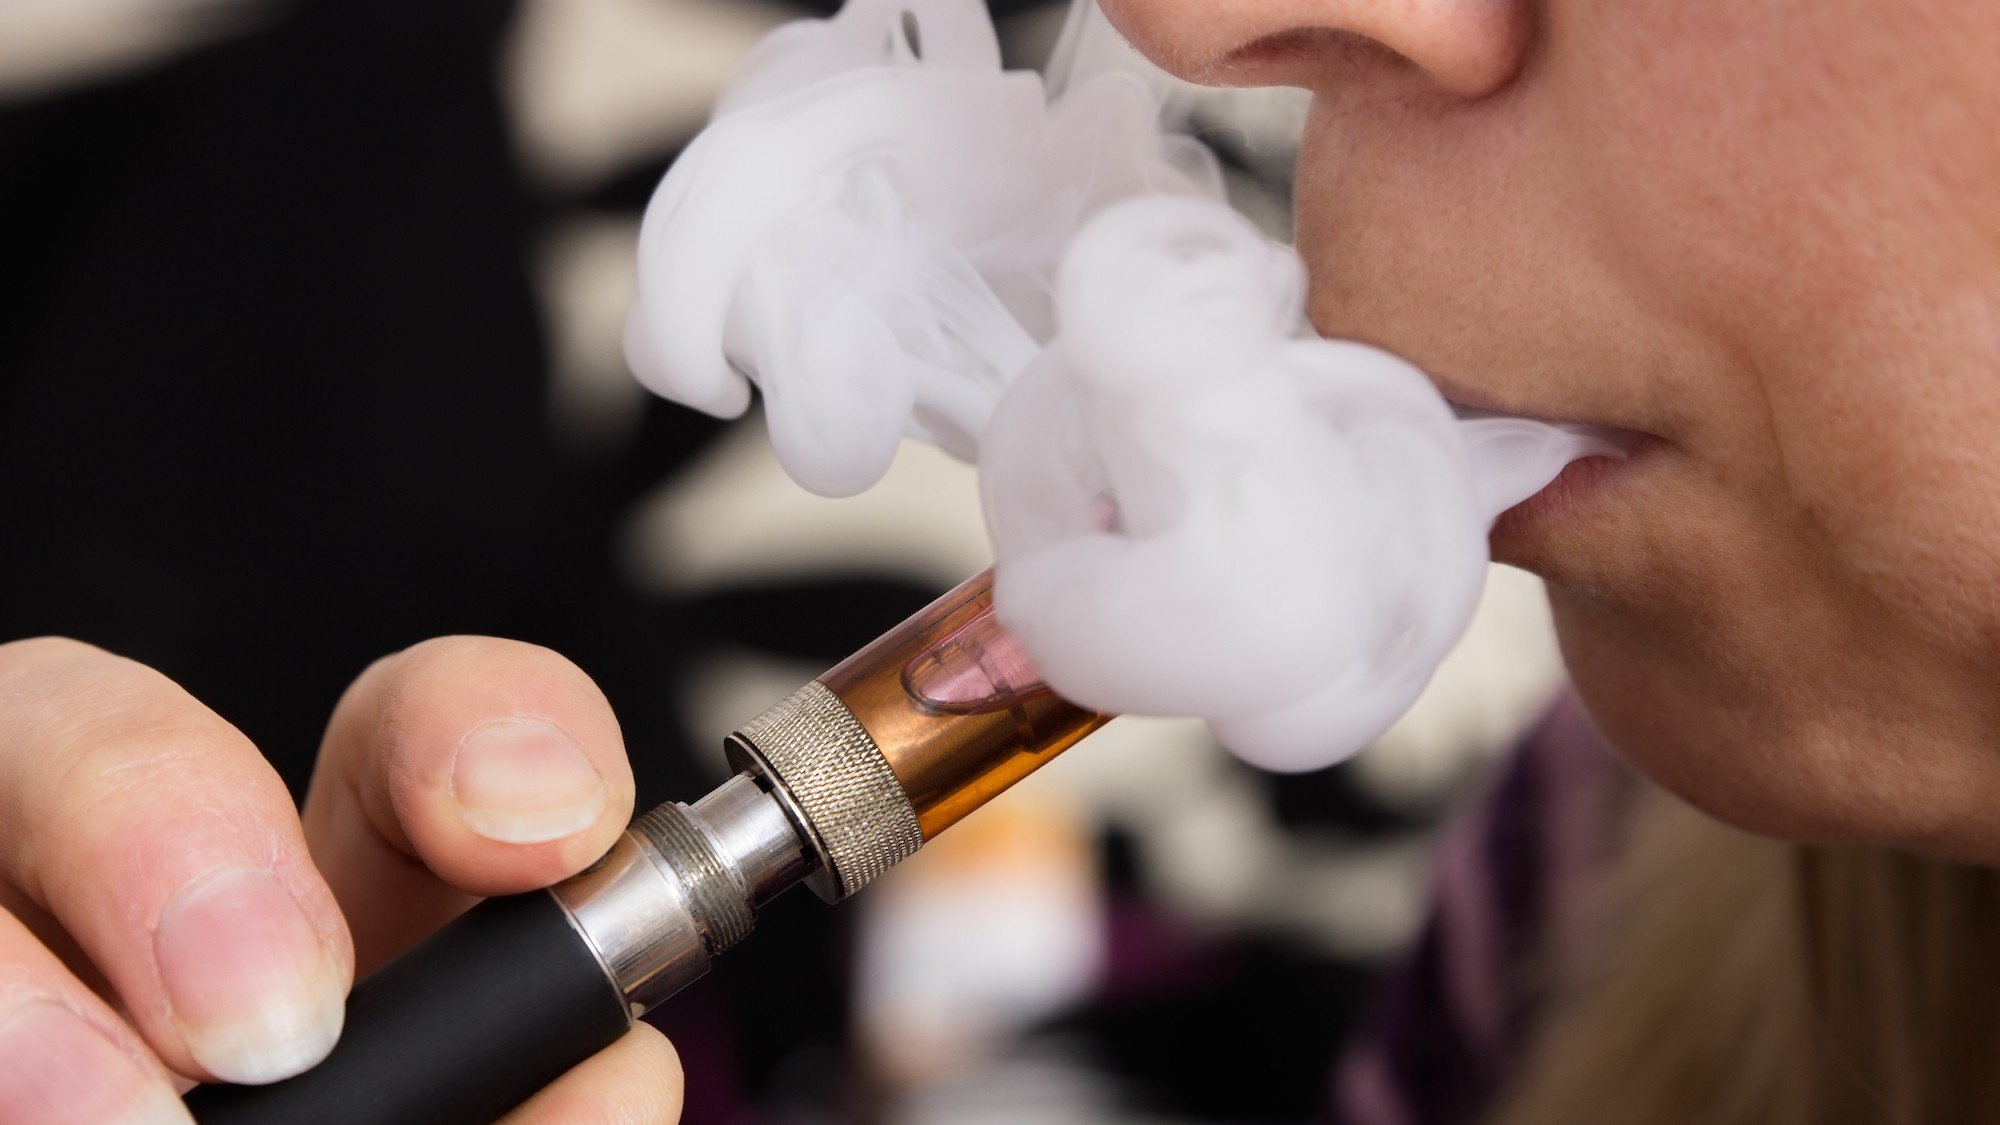 Drug-Resistant Bacteria Are Big Fans of E-Cigs